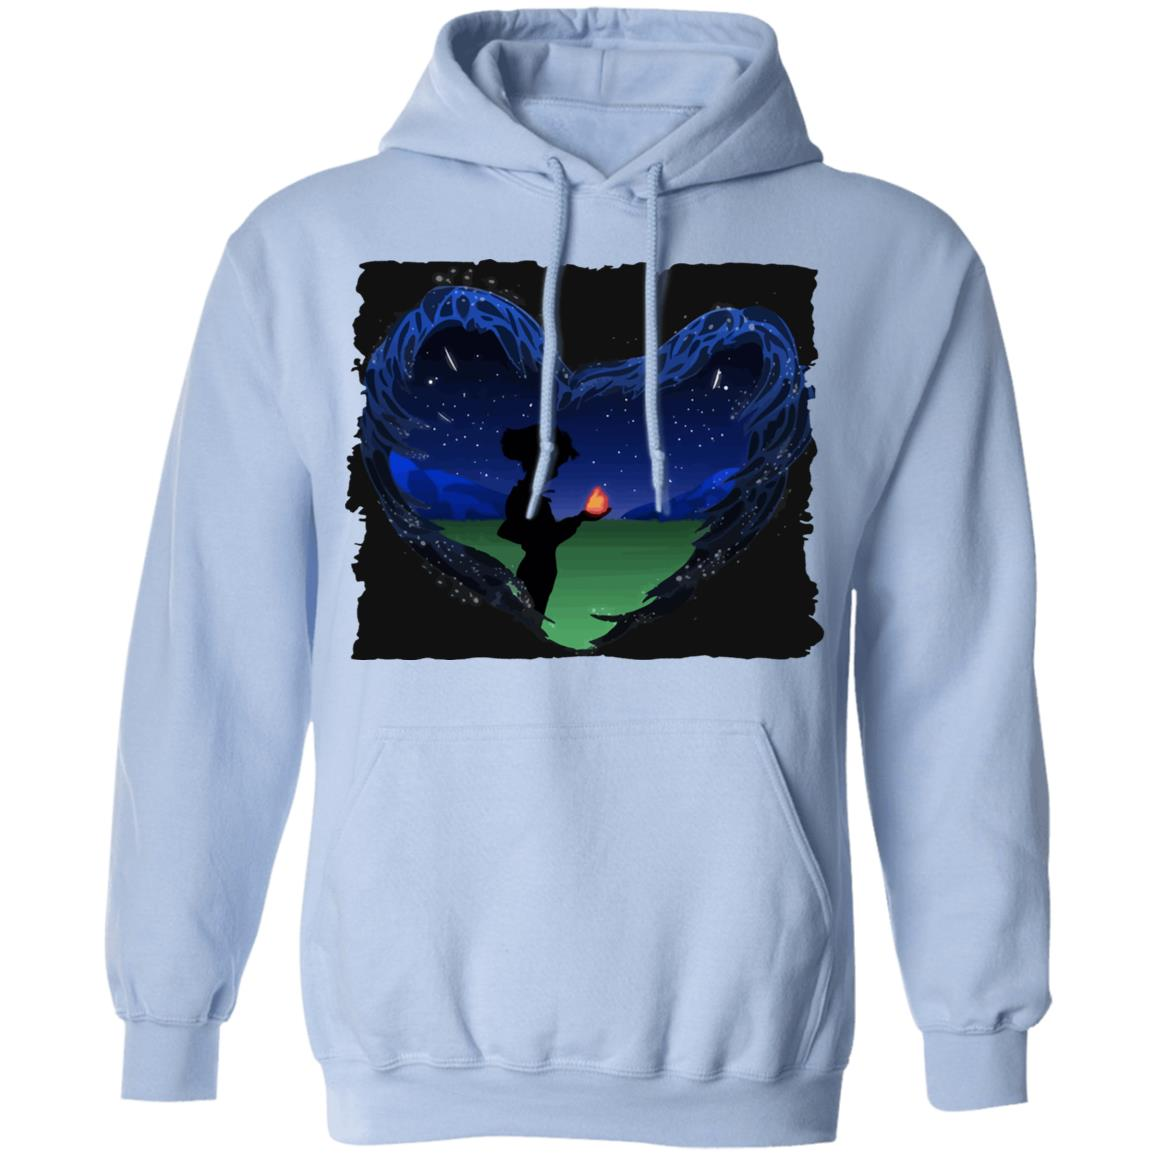 Howl's Moving Castle – Howl meets Calcifer Classic Hoodie